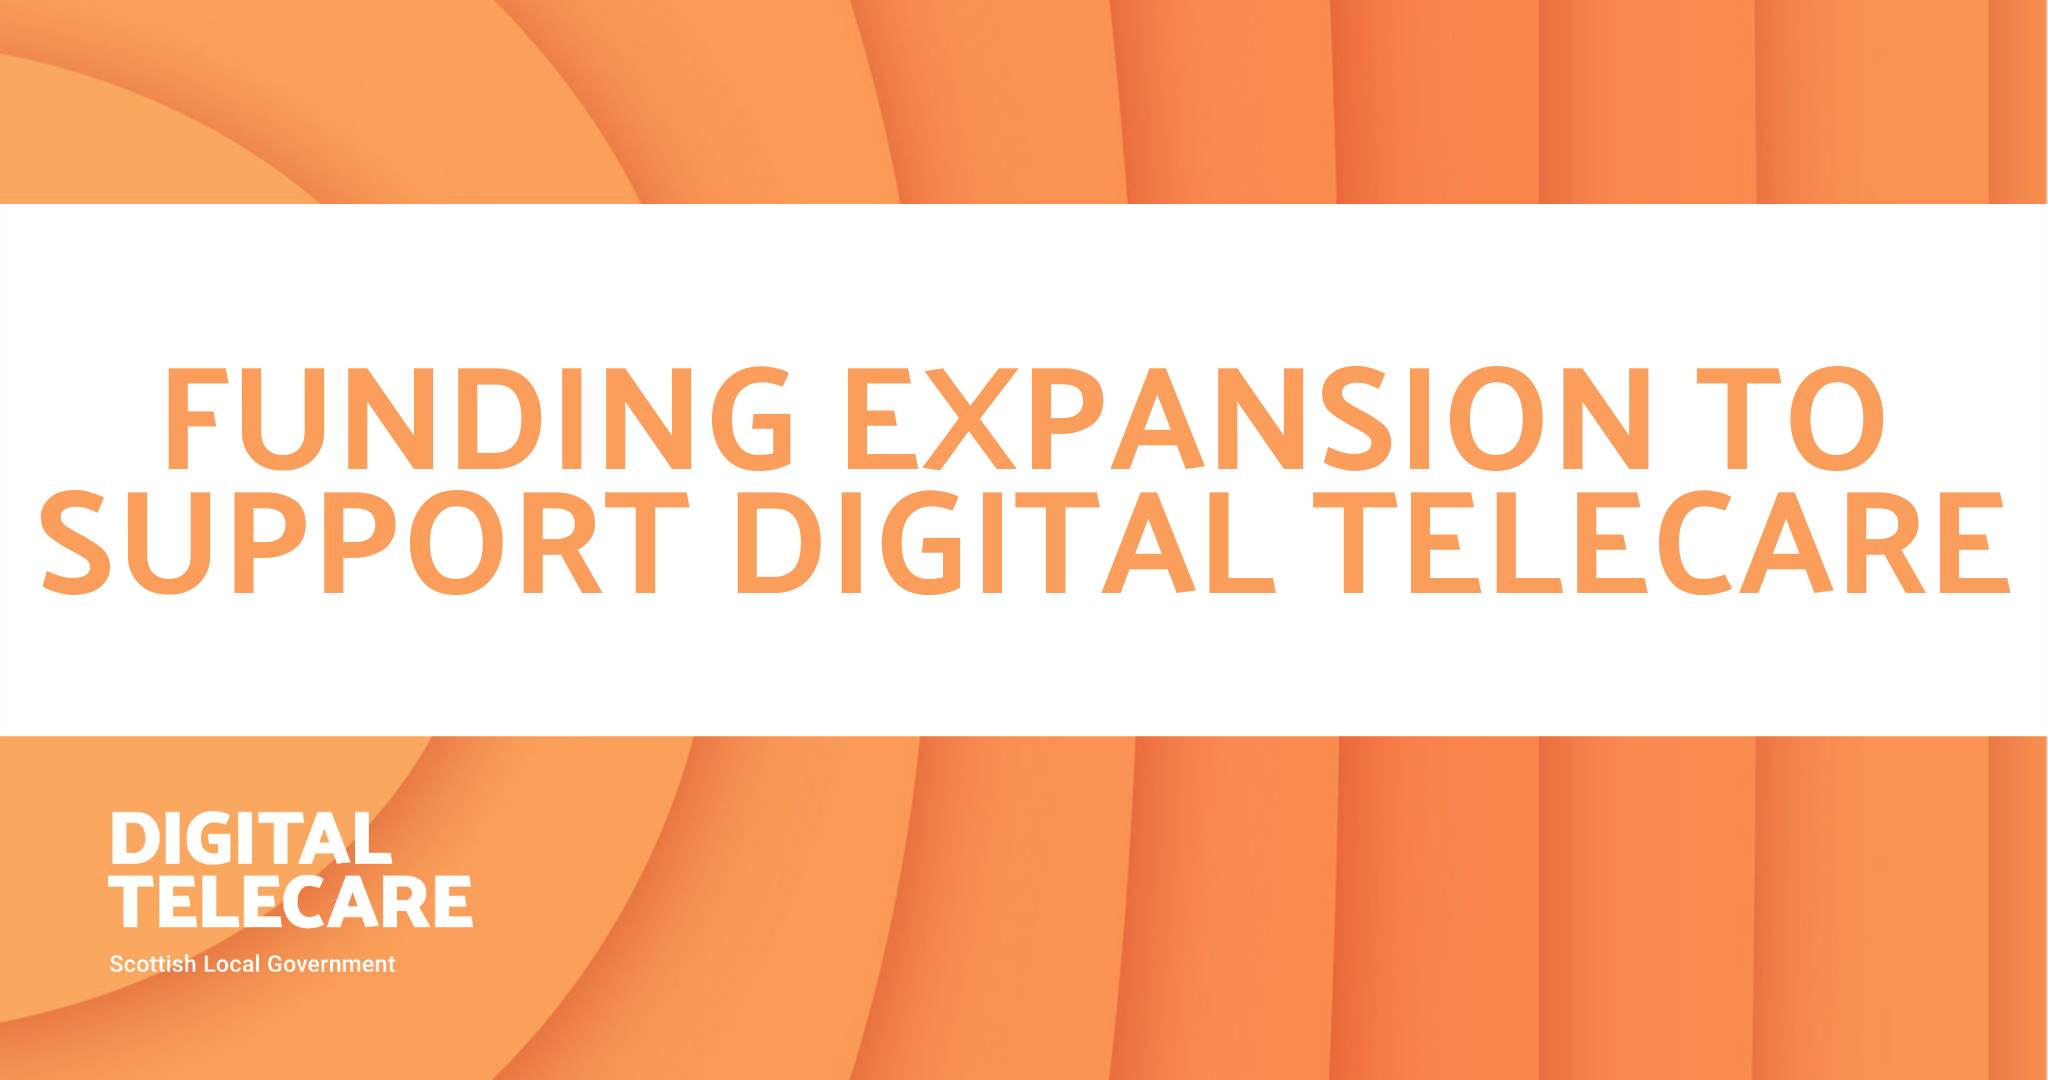 FUNDING EXPANSION TO SUPPORT DIGITAL TELECARE